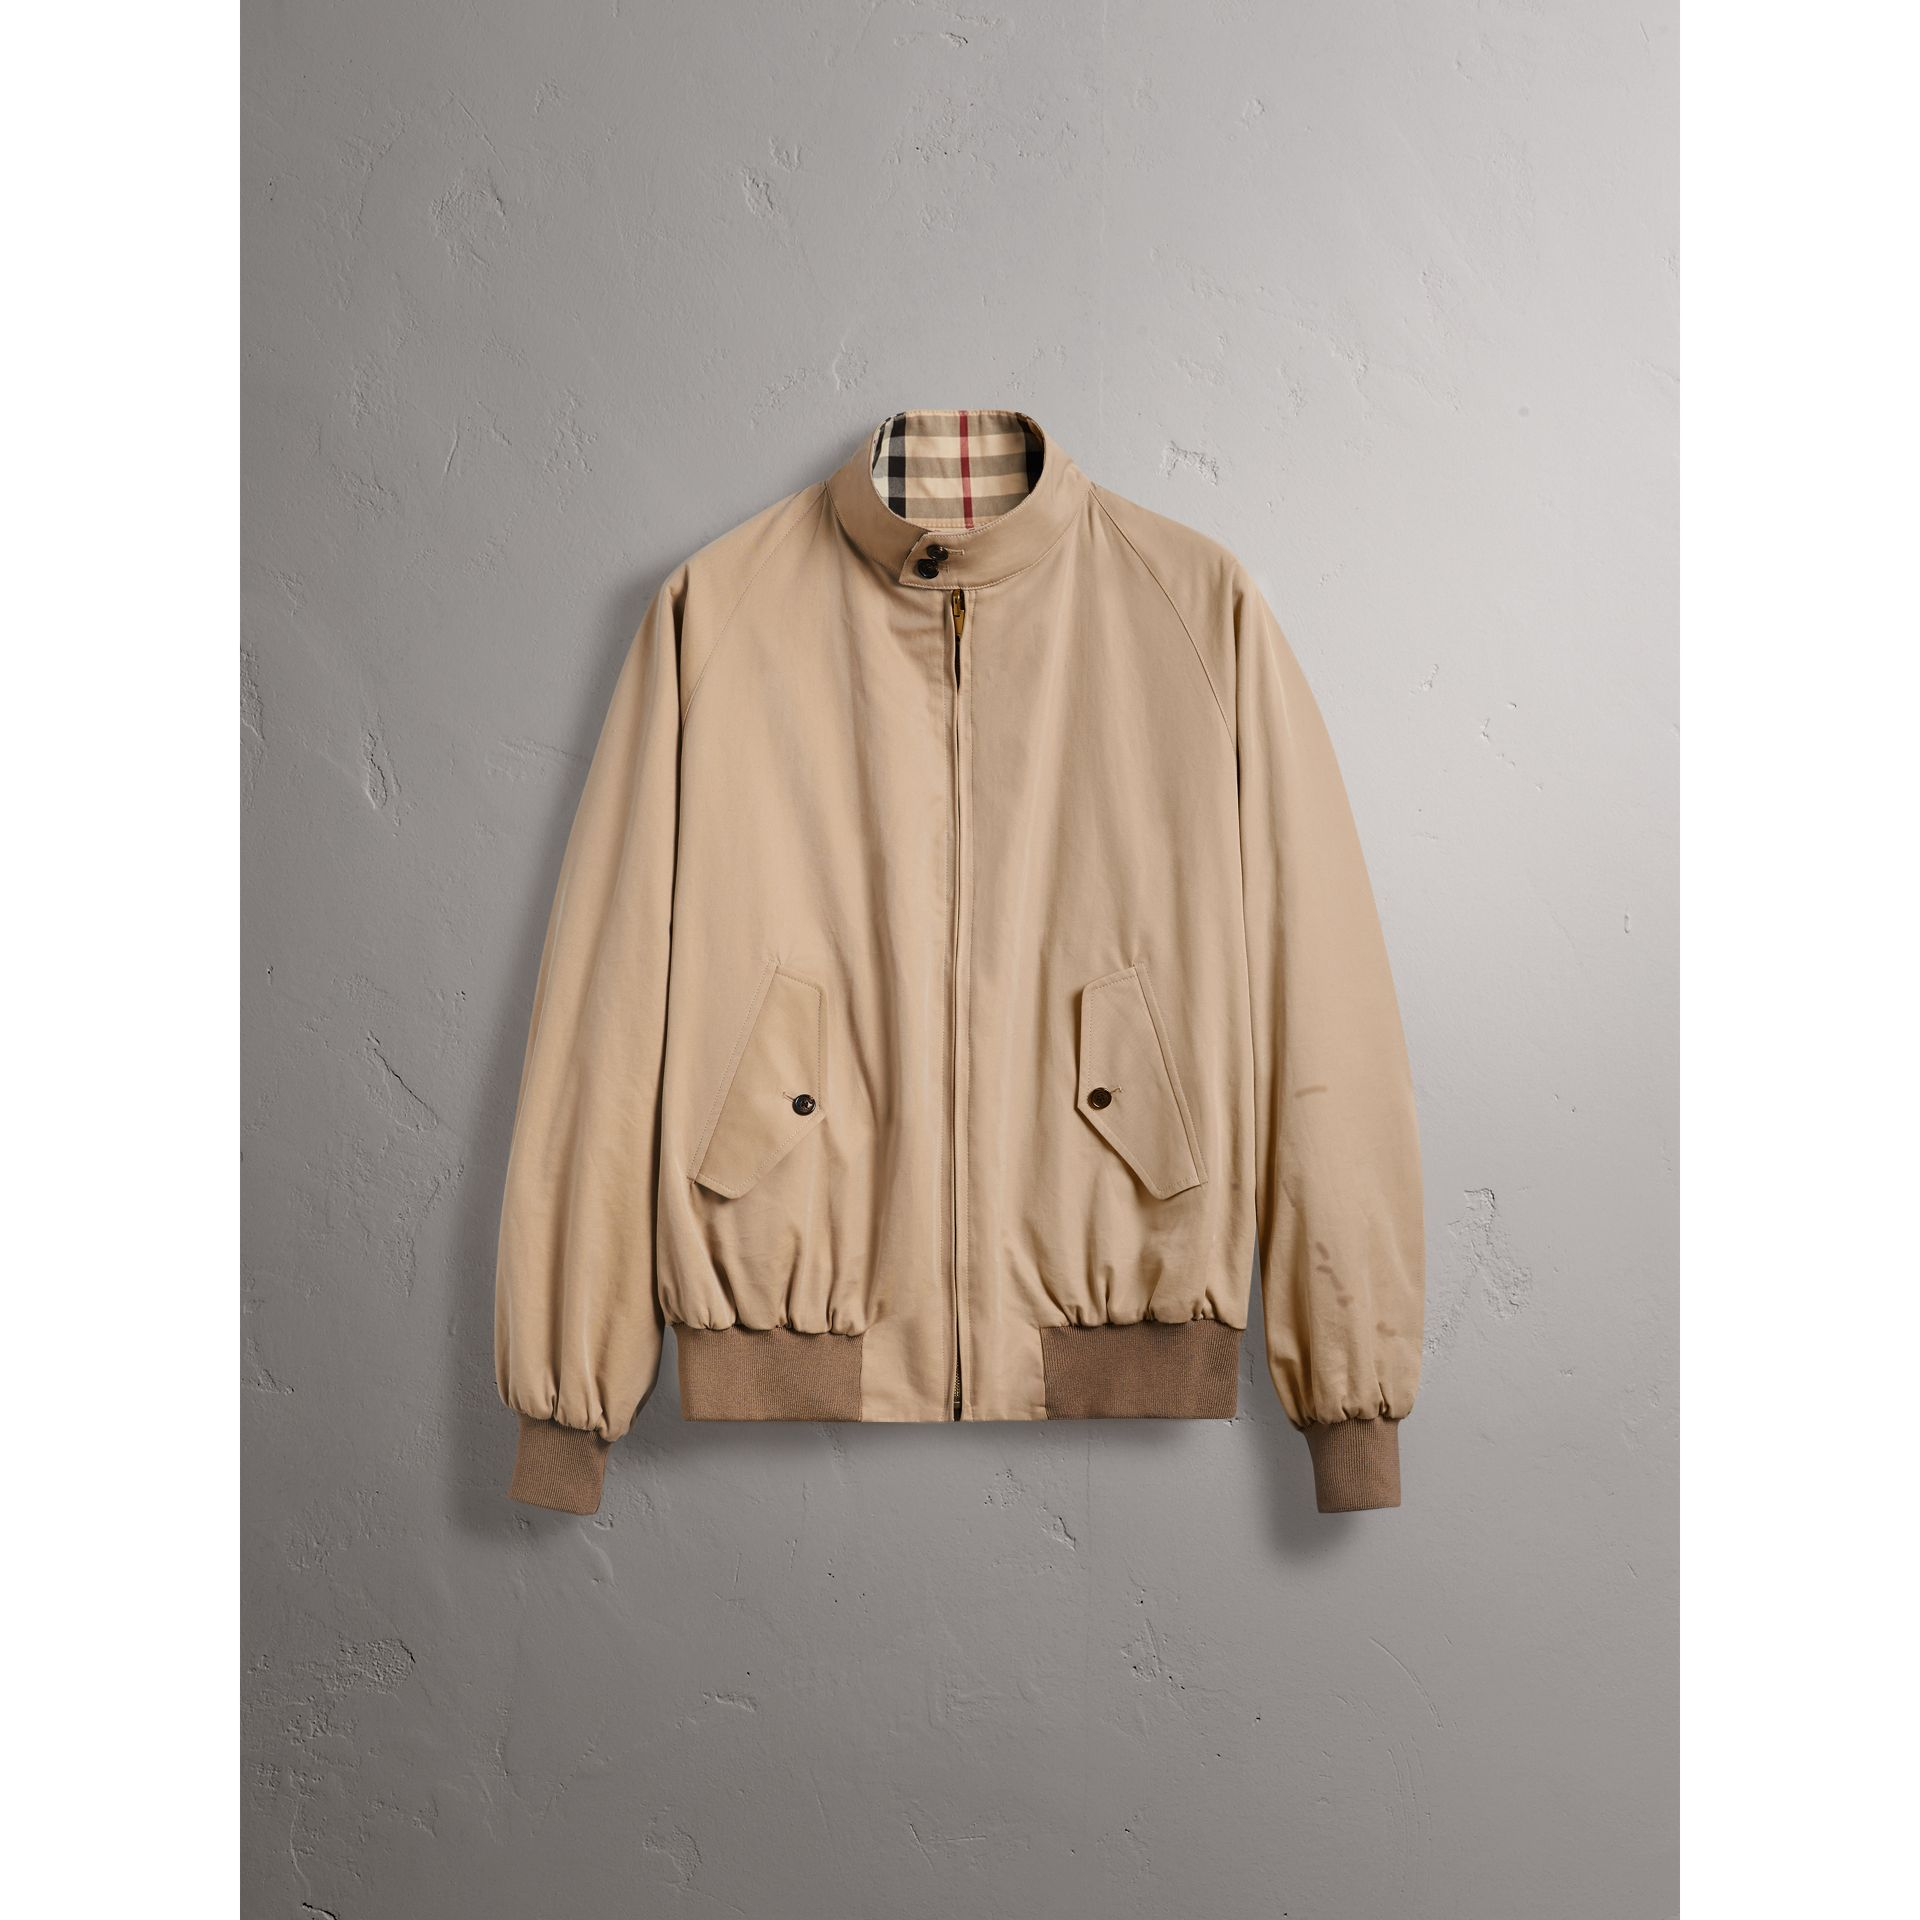 Gosha x Burberry Reversible Harrington Jacket in Honey | Burberry - gallery image 4